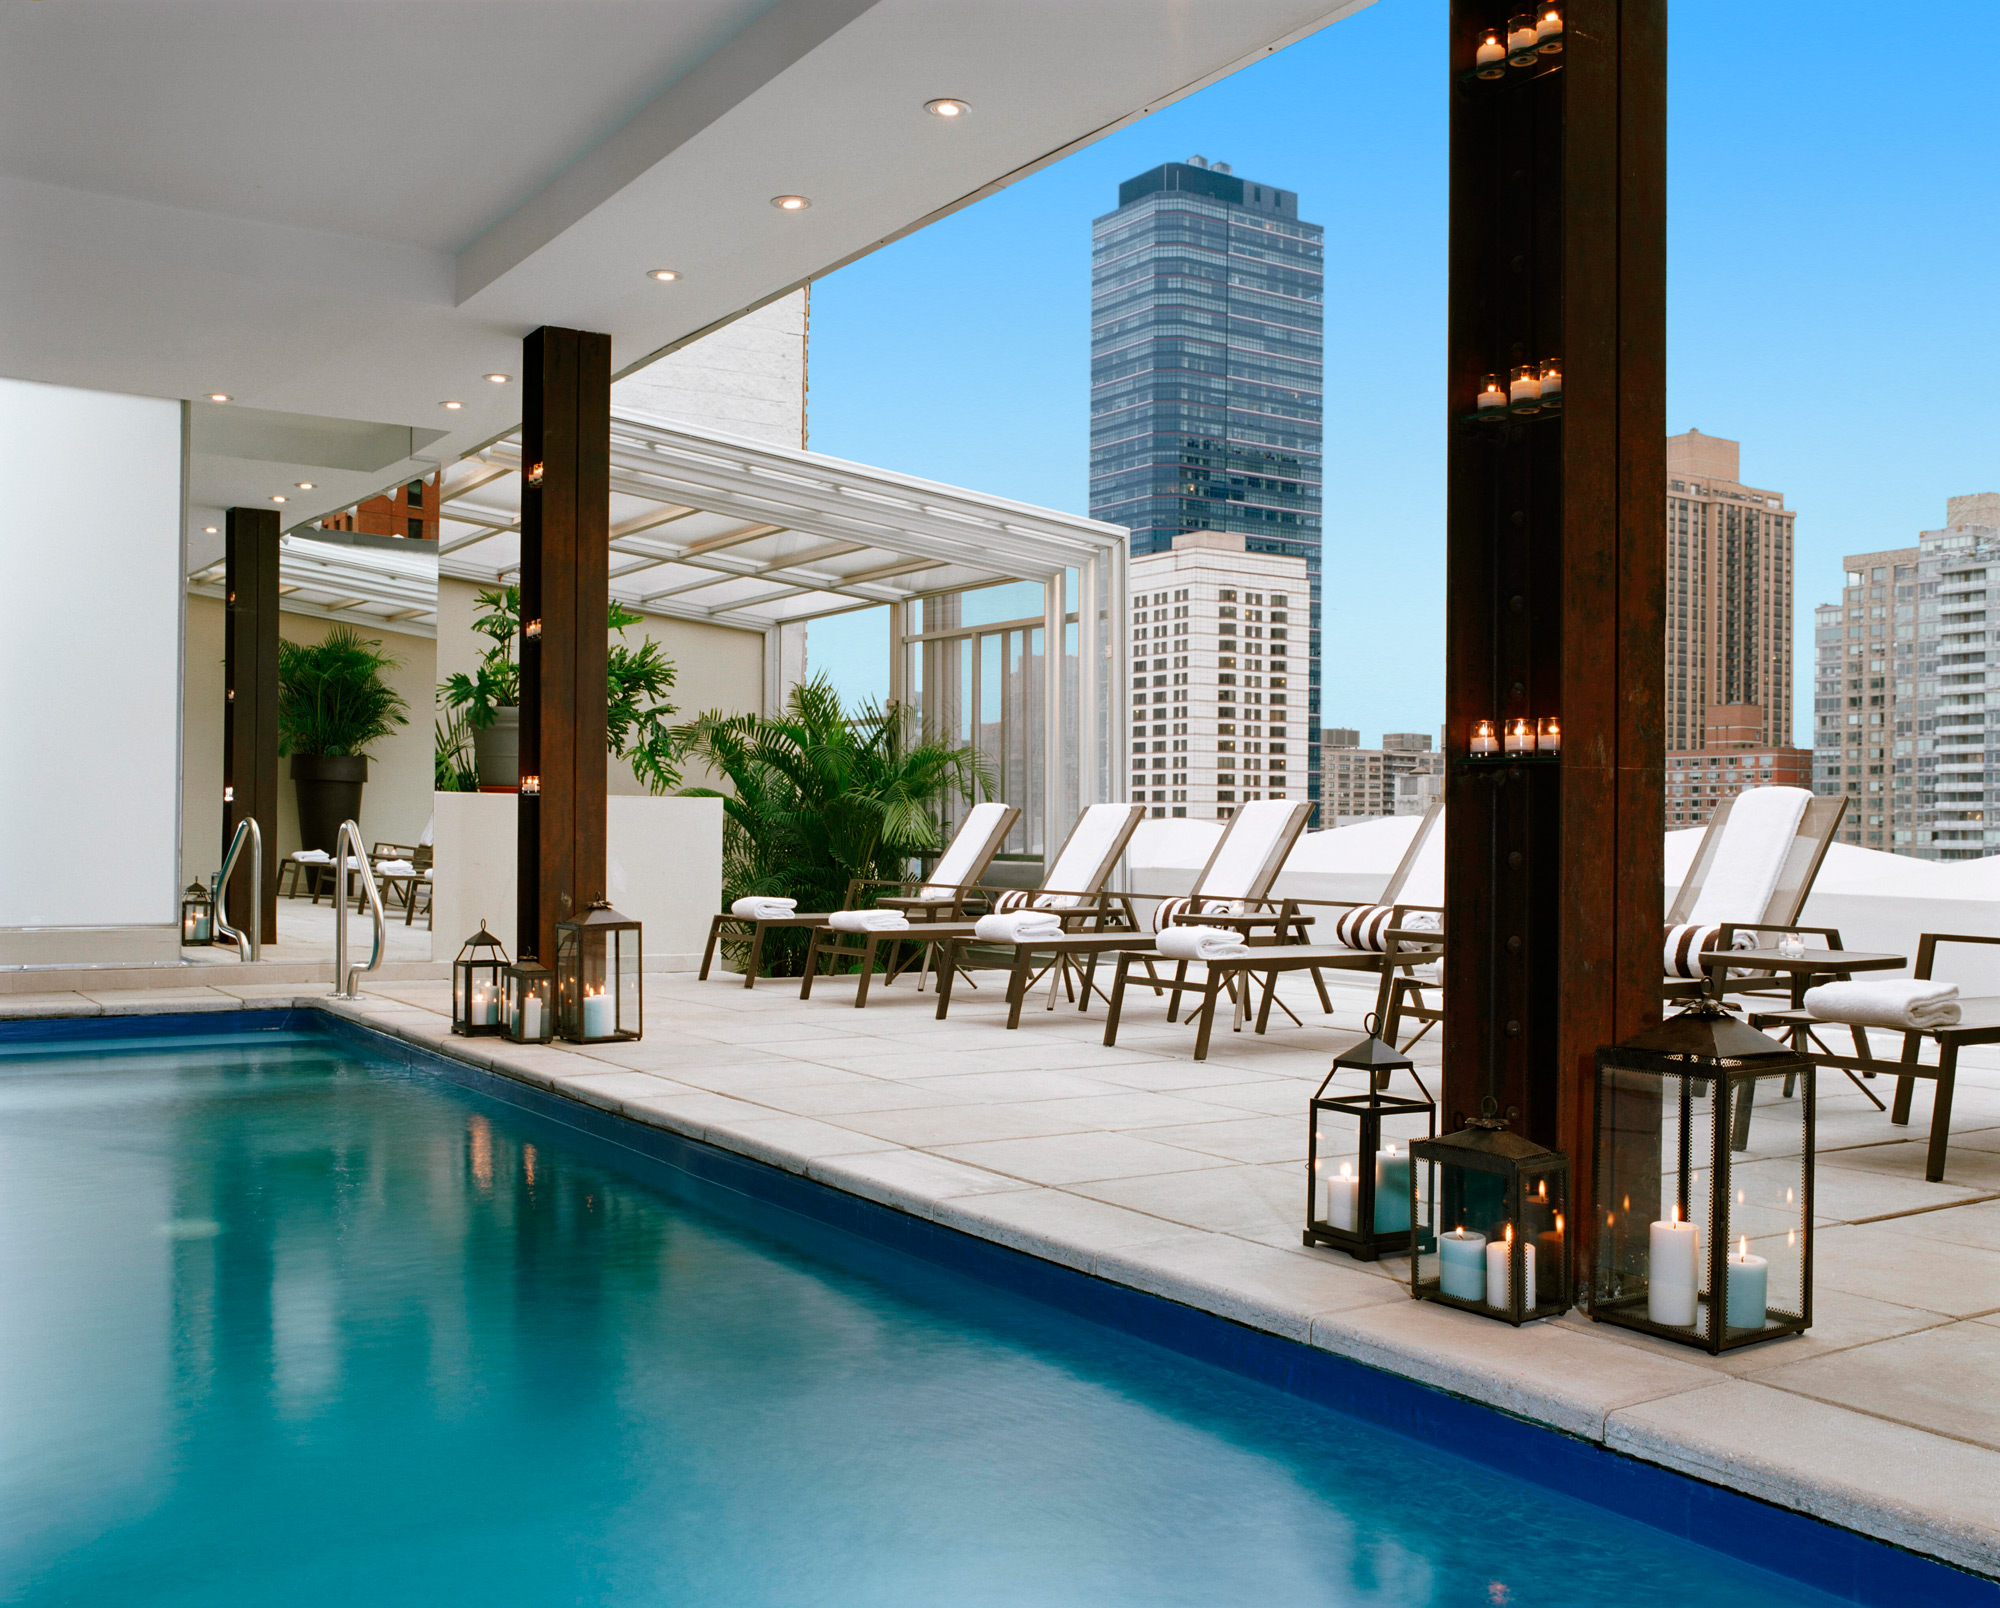 Empire Hotel's Pool Deck – rooftop nyc